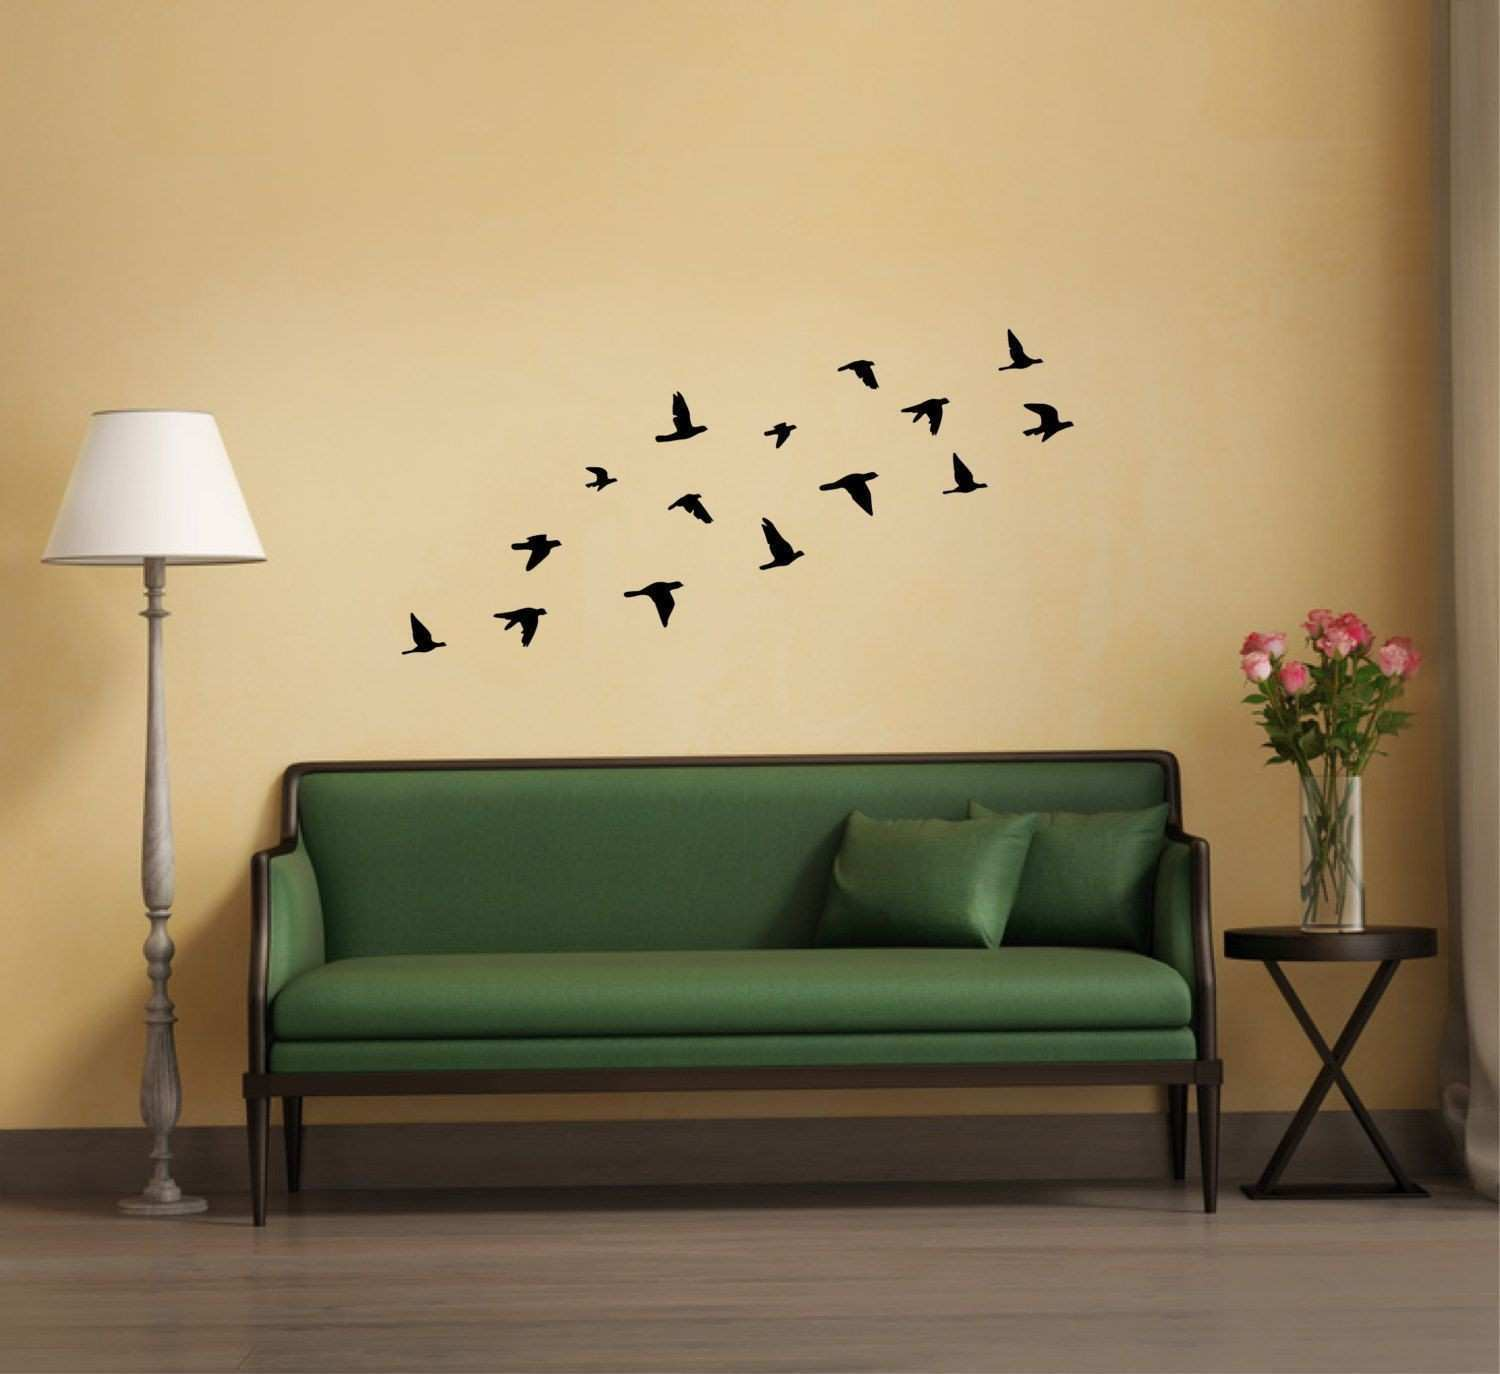 Colorful Birds For Wall Decor Gift Wall Art Collections